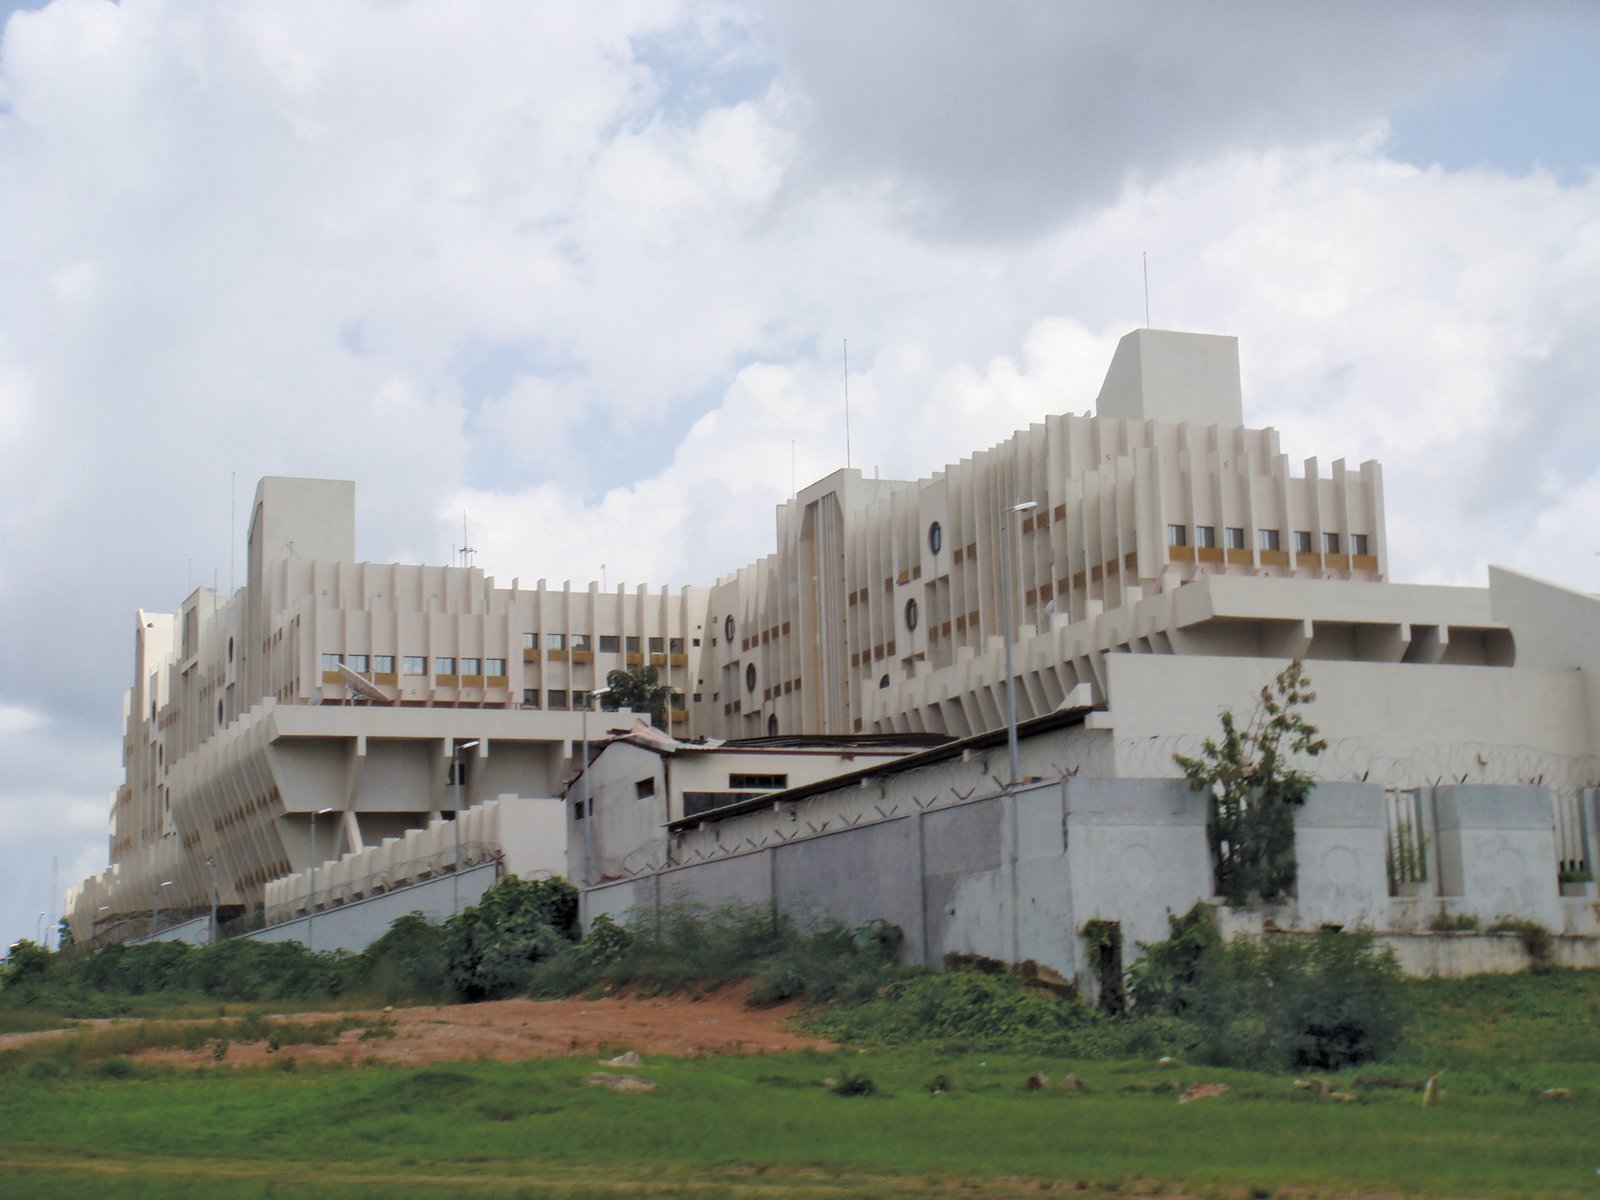 """Visiting Abuja, Nigeria, Adjaye notes: """"The architecture of the public buildings is intended to present Abuja as the country's symbolic Center of power. Key government buildings, the cathedral and the main mosque occupy conspicuous sites in the center of the city.""""  David Adjaye's African Architecture Photo Survey"""